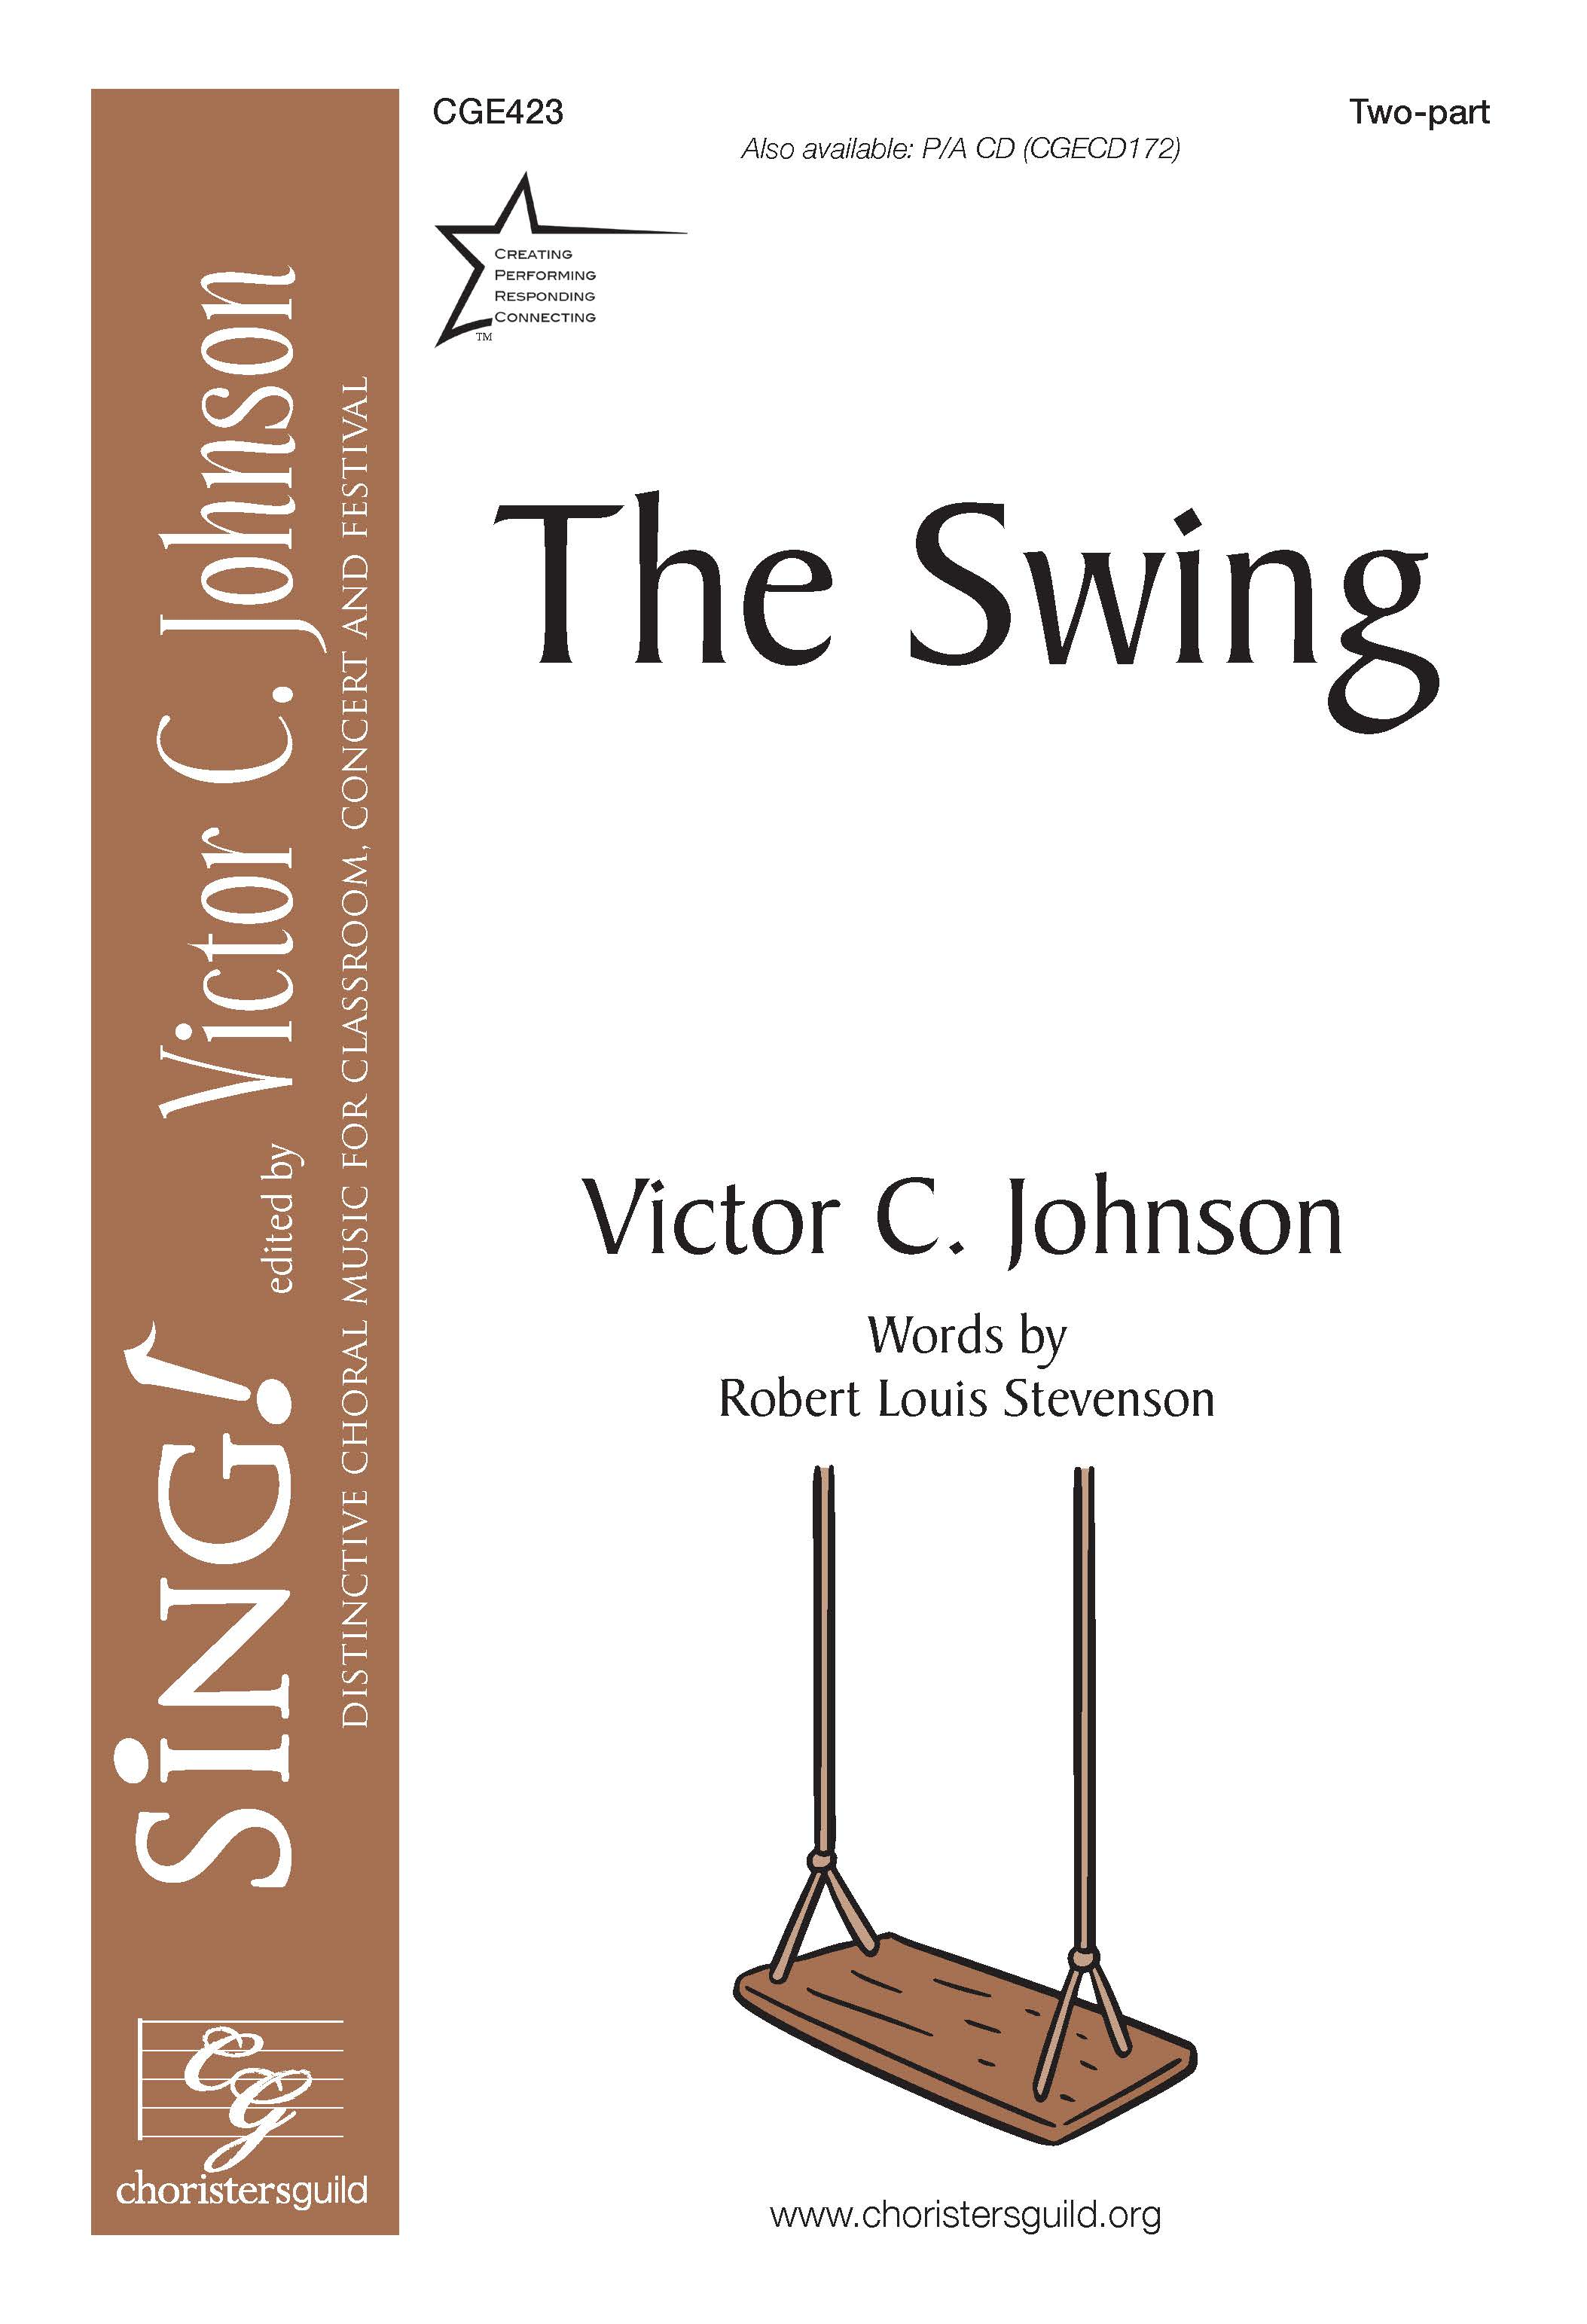 The Swing - Two-part